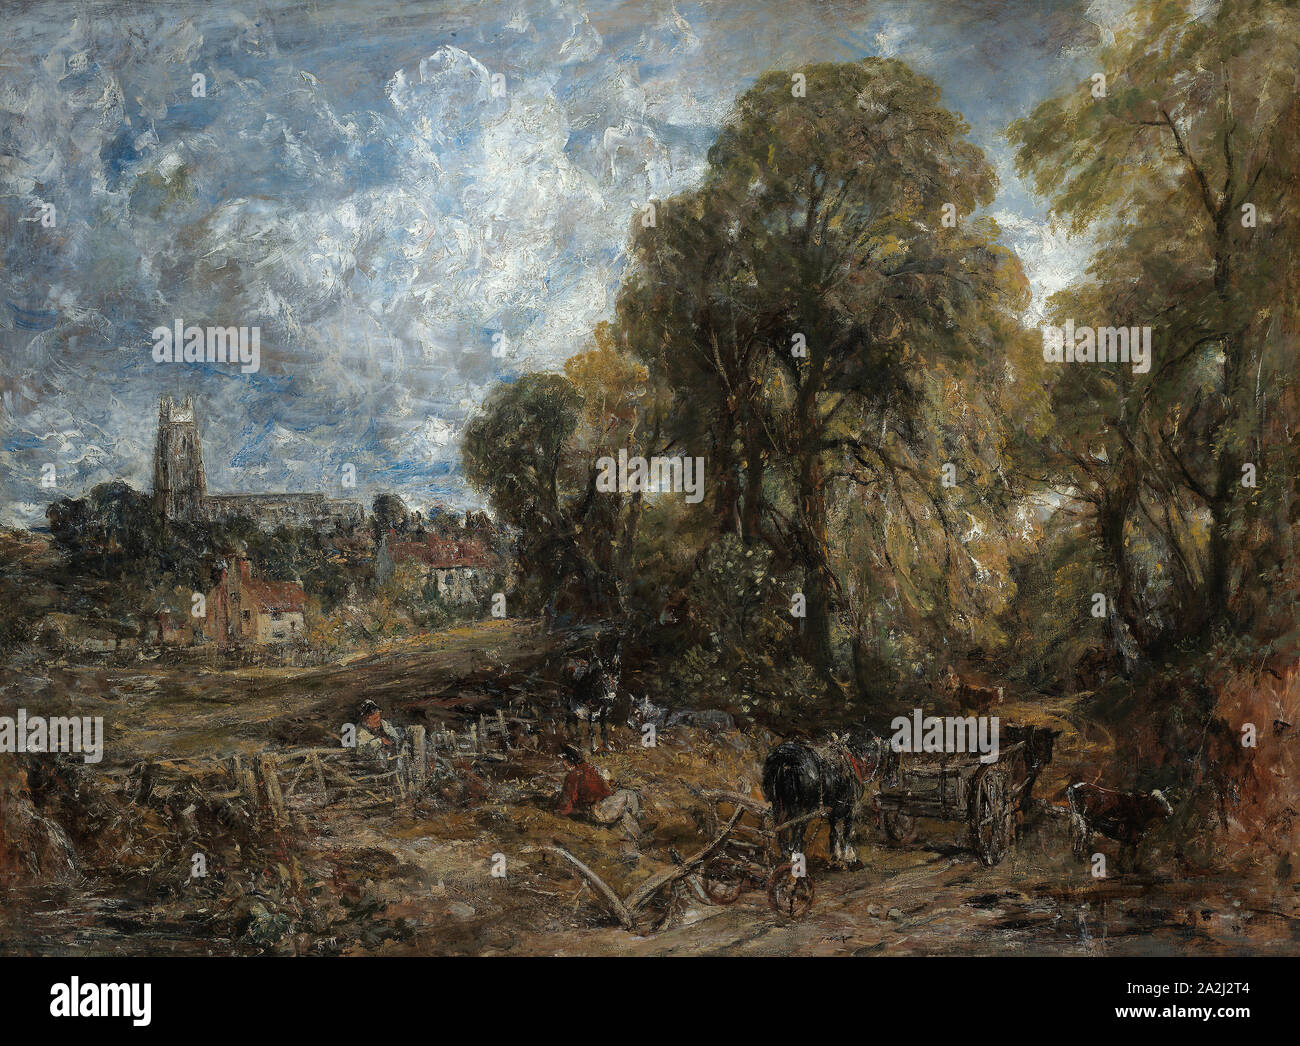 Stoke-by-Nayland, 1836, John Constable, English, 1776-1837, England, Oil on canvas, 126 × 169 cm (49 5/8 × 66 1/2 in Stock Photo